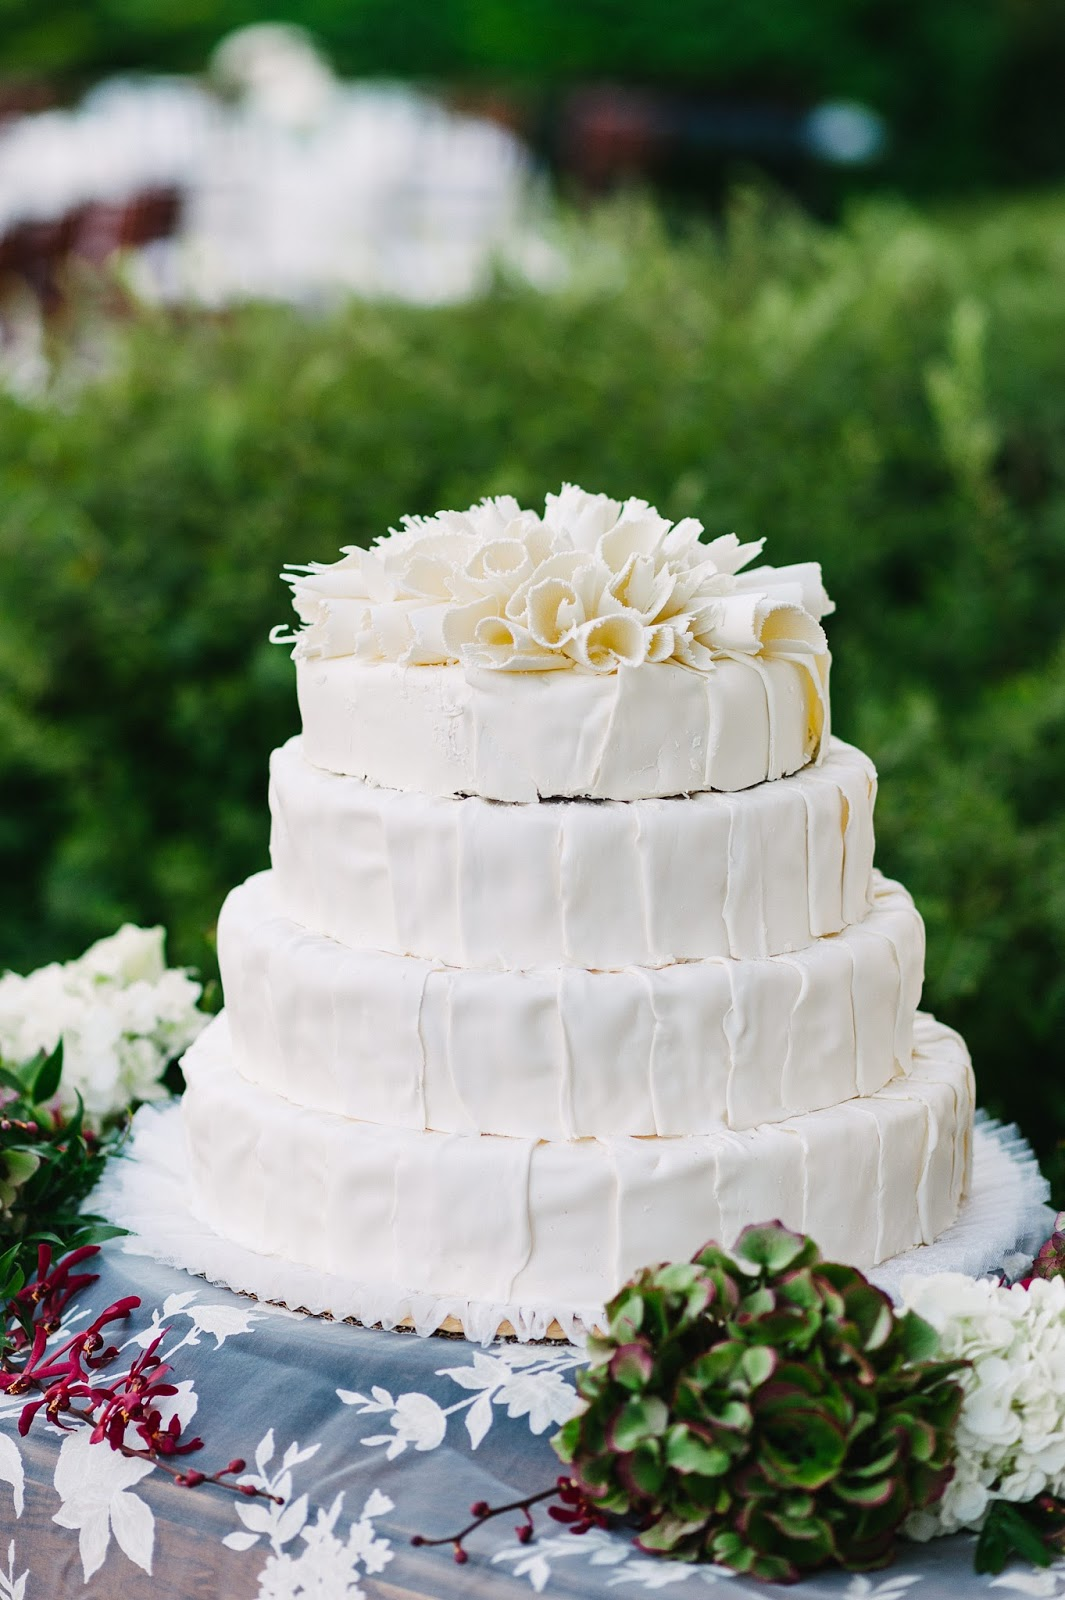 We Cut The Cake To A Song Love By Band And With That Spoken Four Started Playing Dancing Flip Flops Offered Guests